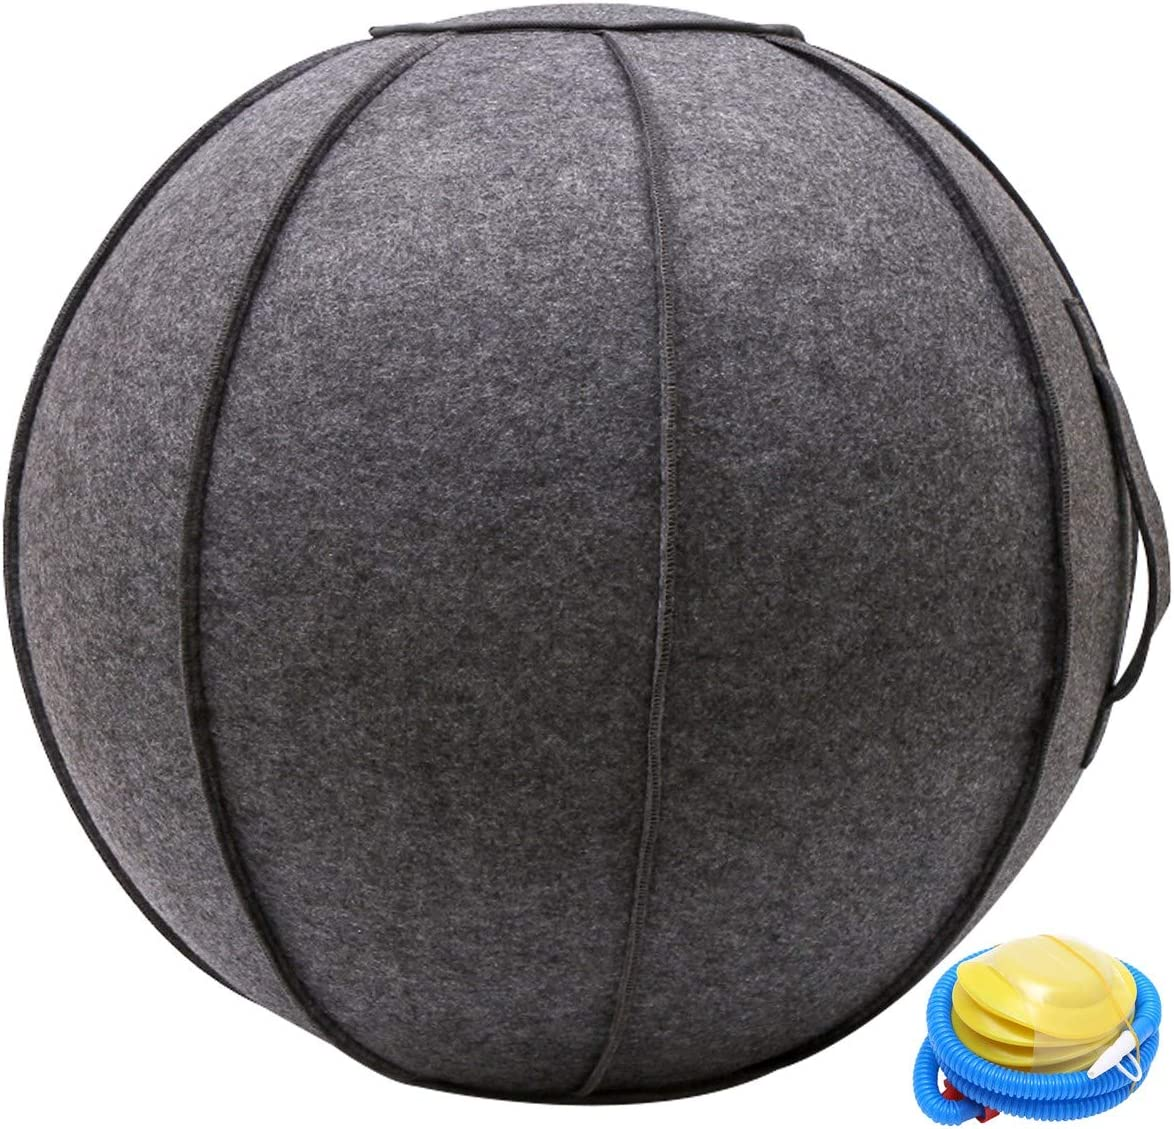 N/N 65cm Sitting Ball Chair for Office, Dorm, and Home, Pilates Exercise Yoga Ball with Cover, Lightweight Self-Standing Ergonomic Posture Activating Exercise Ball Solution with Handle and Pump